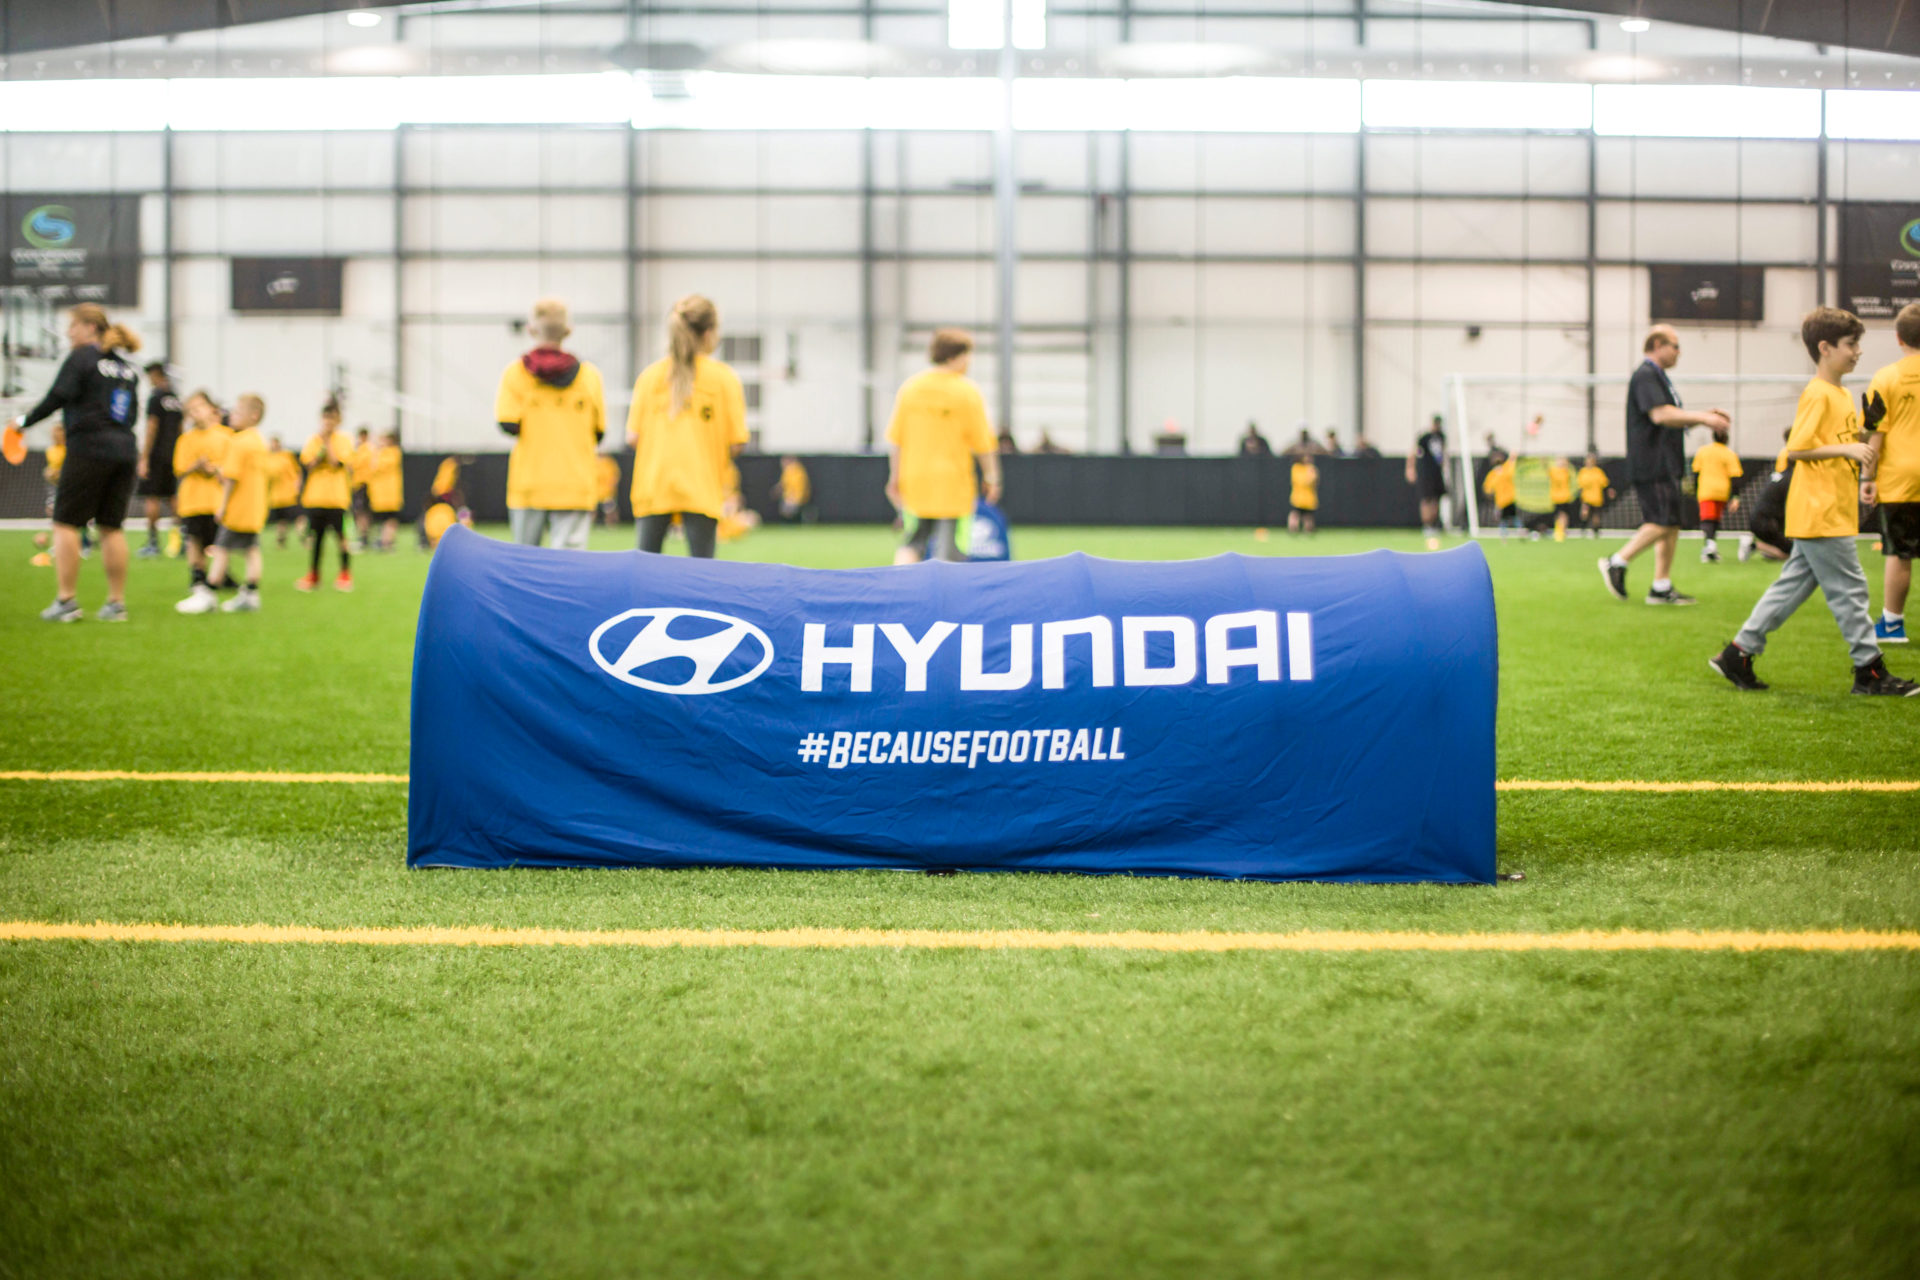 OHM_Hyundai_Youth_NFL_Top_Selects-2.jpg